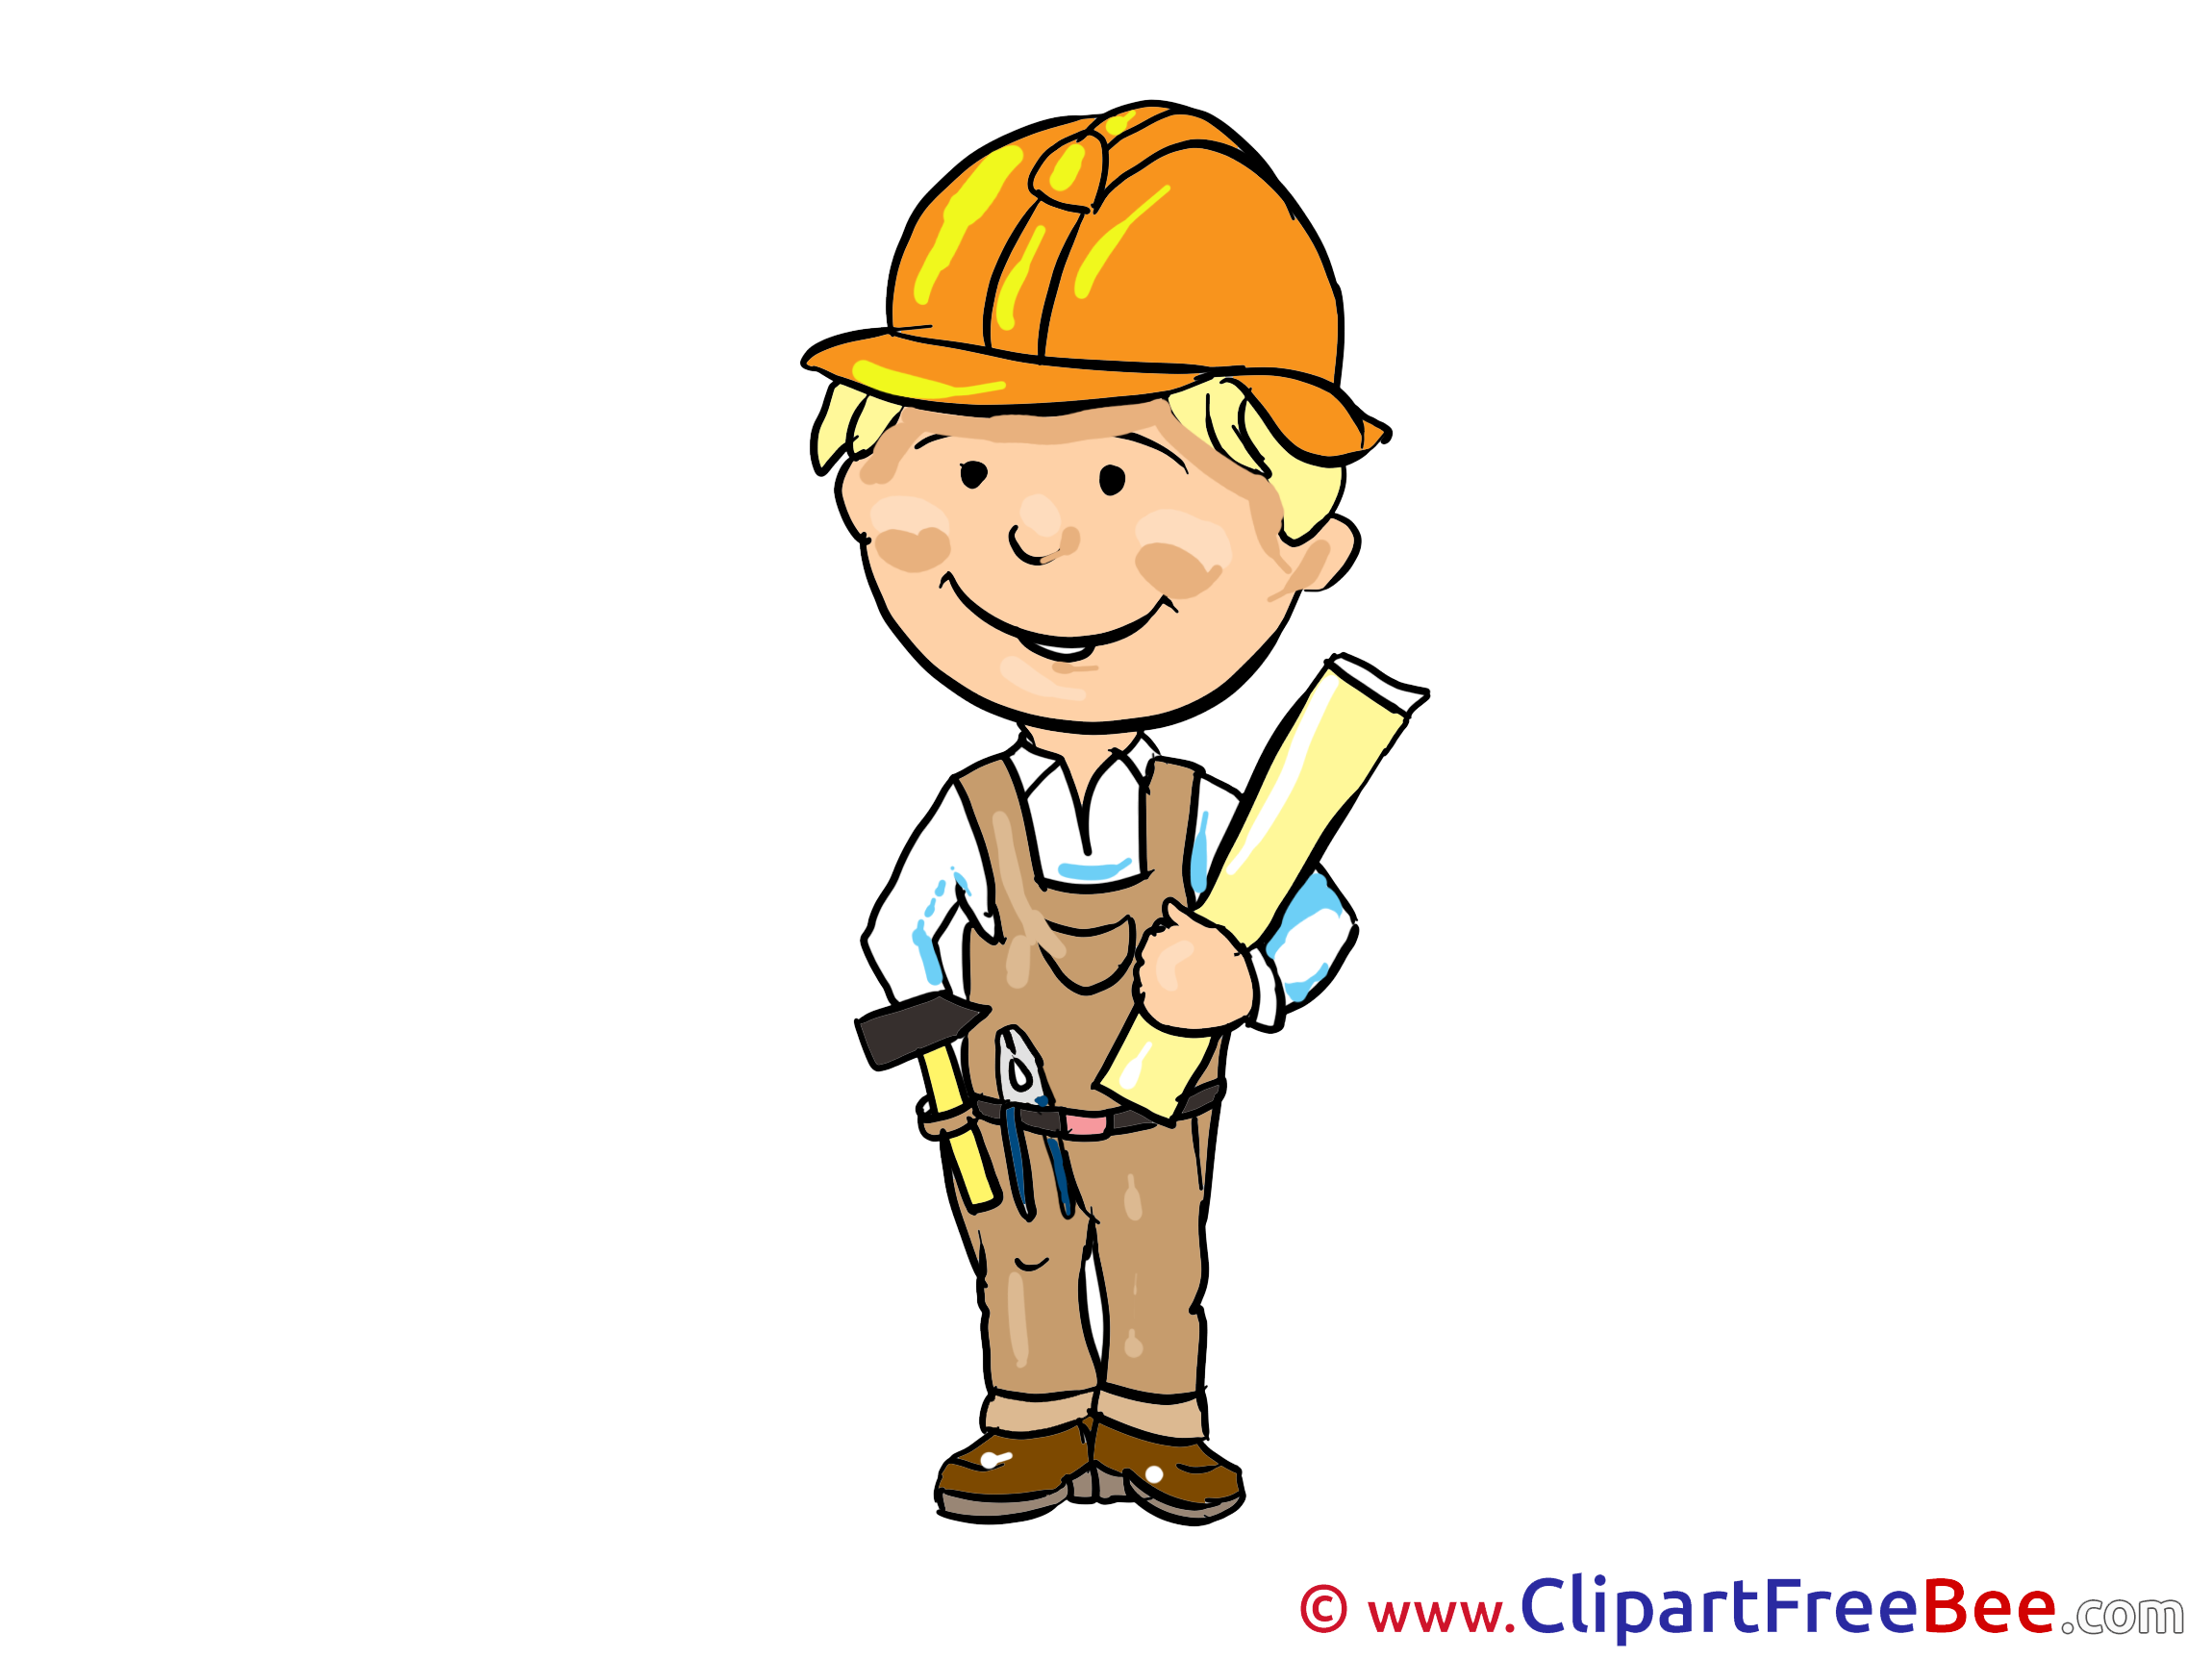 Architect clipart boy. Printable illustrations for free